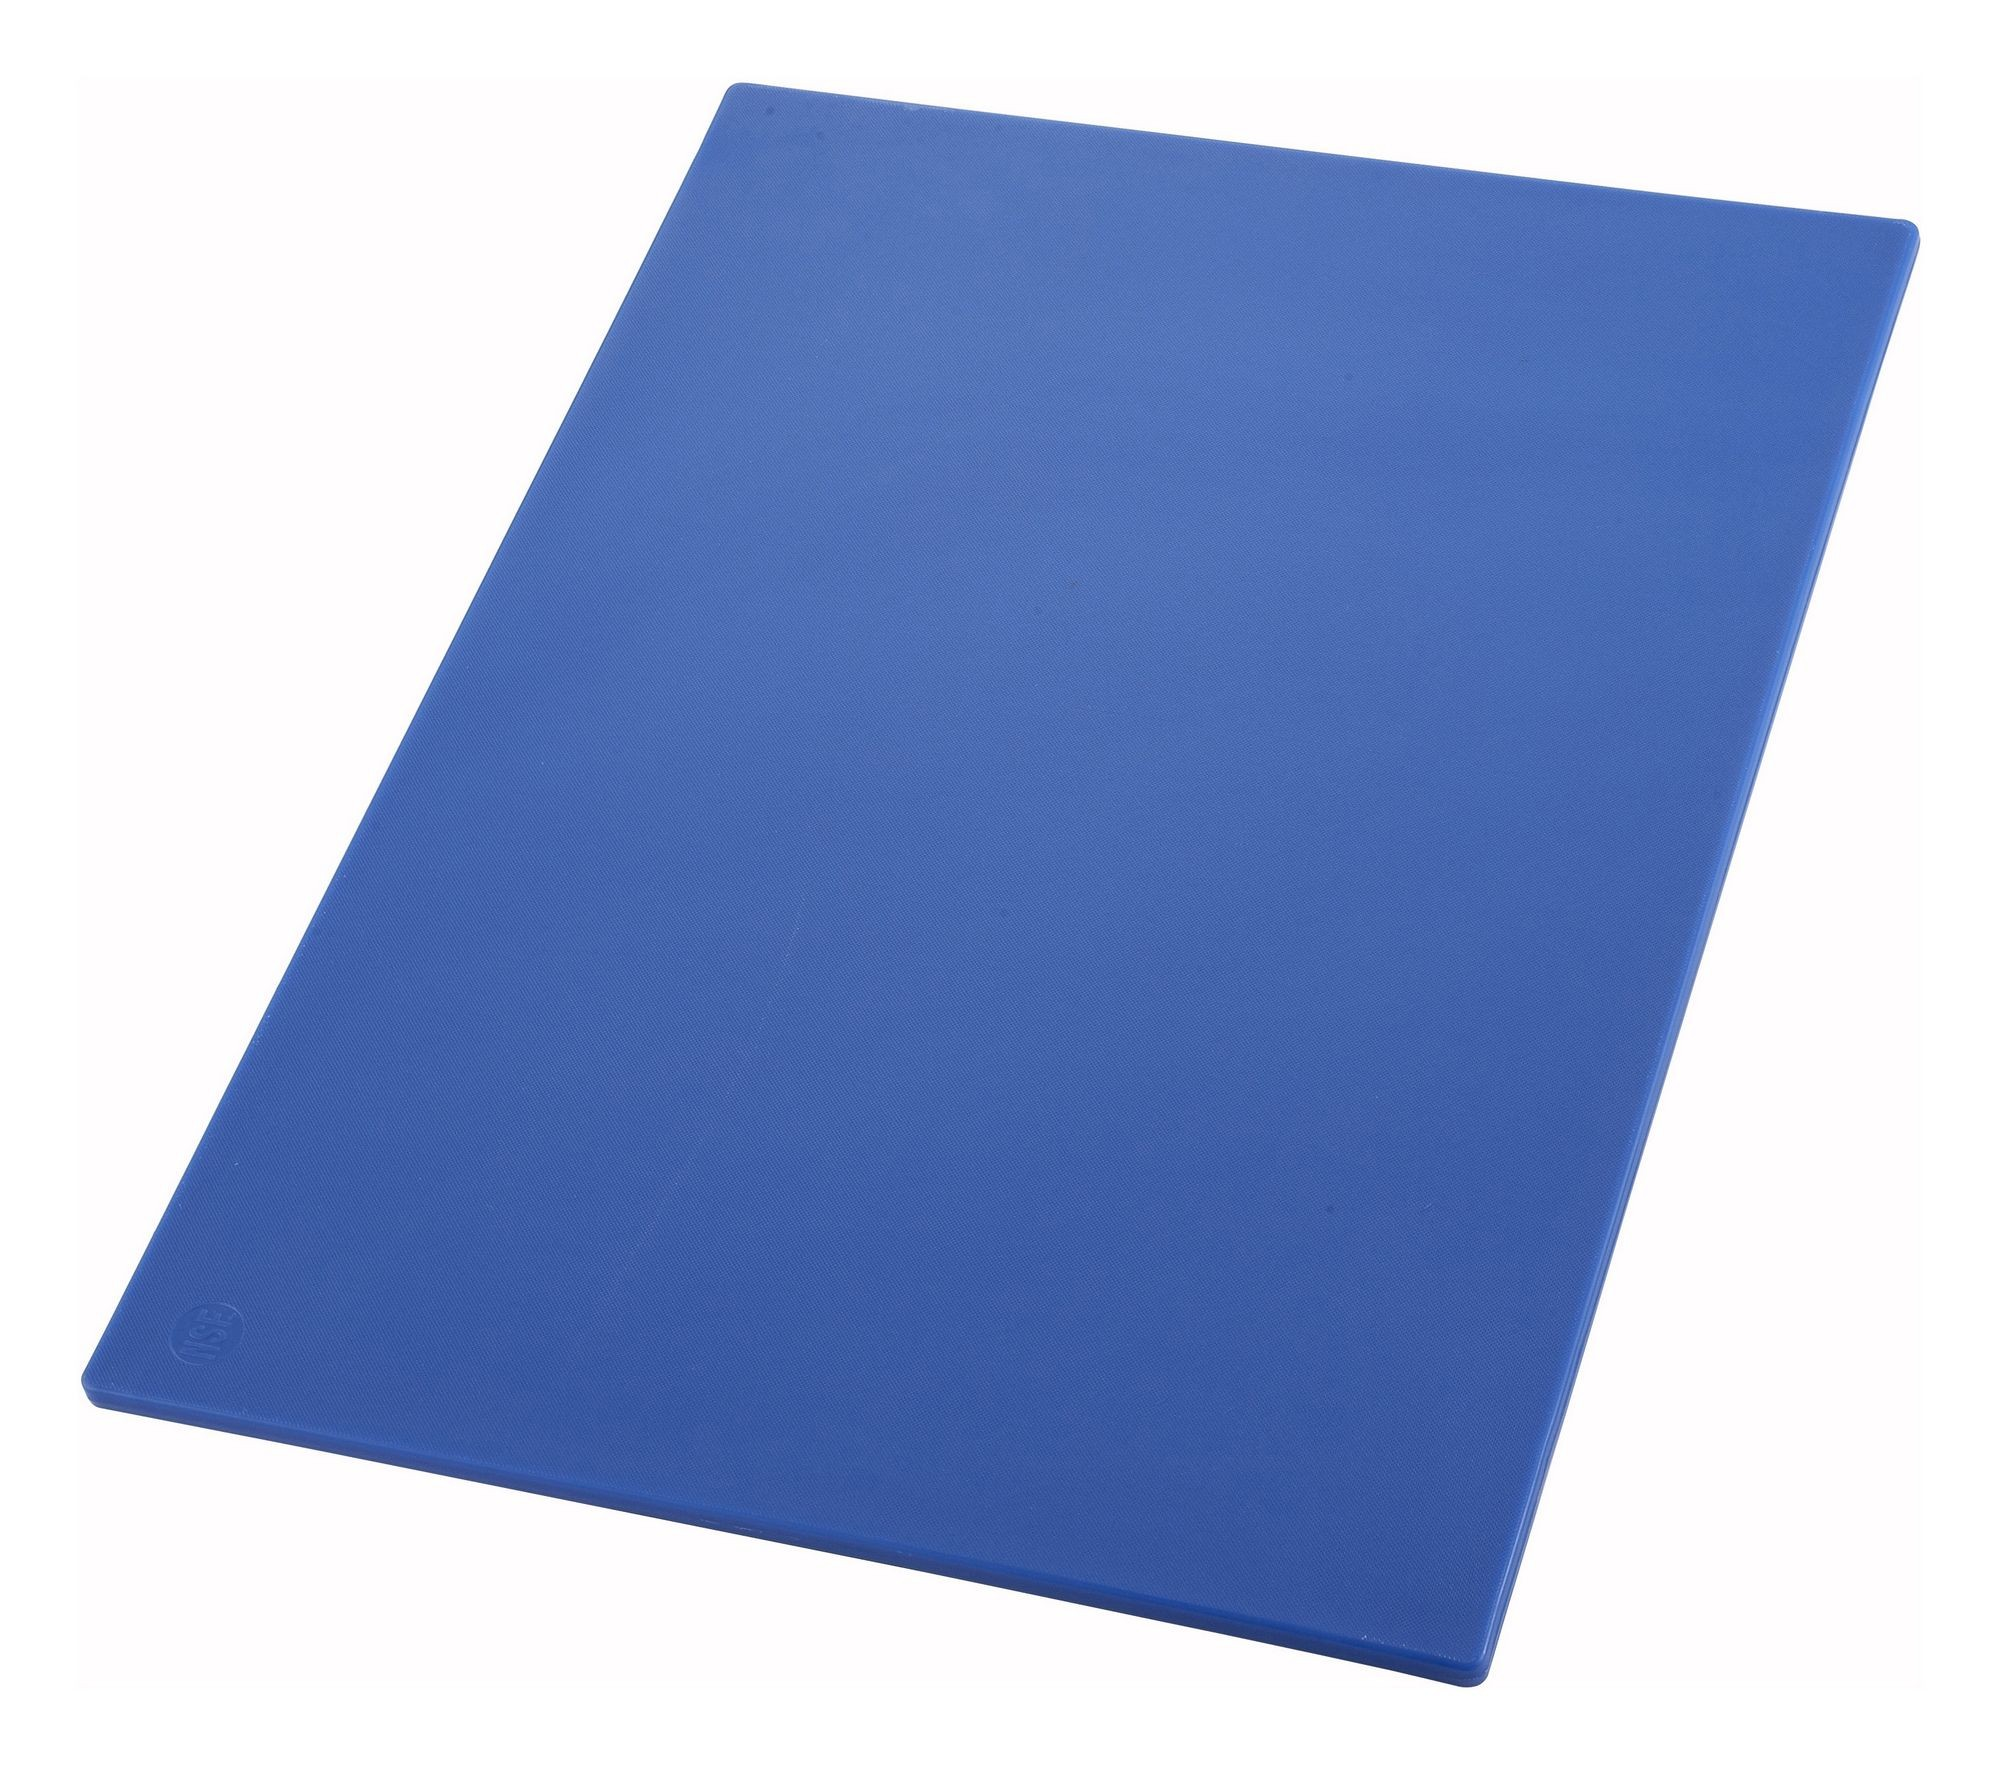 Thick Blue Cutting Board - 18 X 24 X 1/2 (Seafood Board)